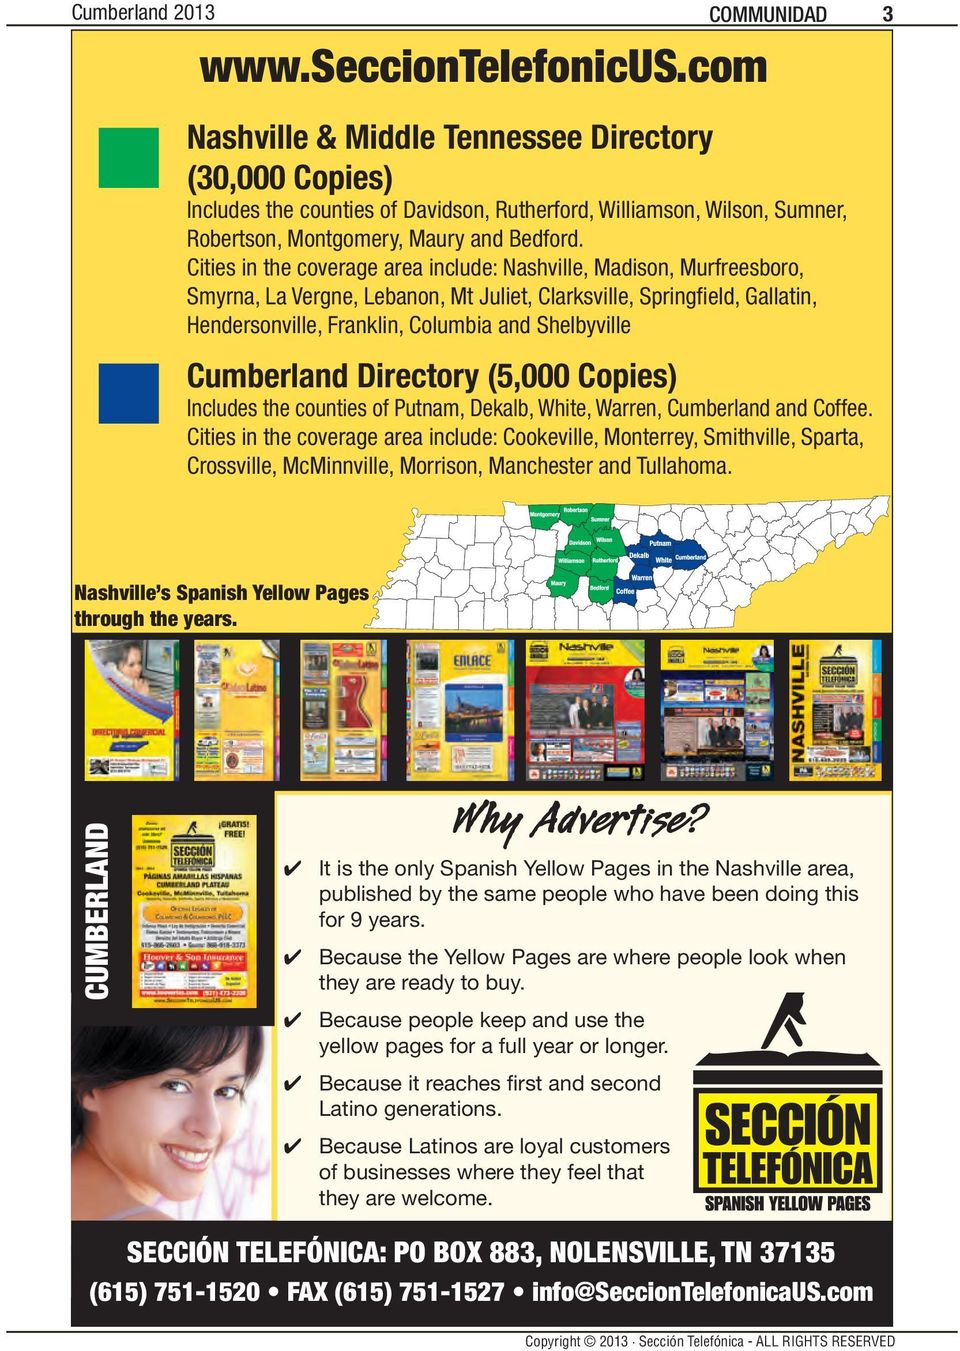 Cumberland Directory (5,000 Copies) Includes the counties of Putnam, Dekalb, White, Warren, Cumberland and Coffee.